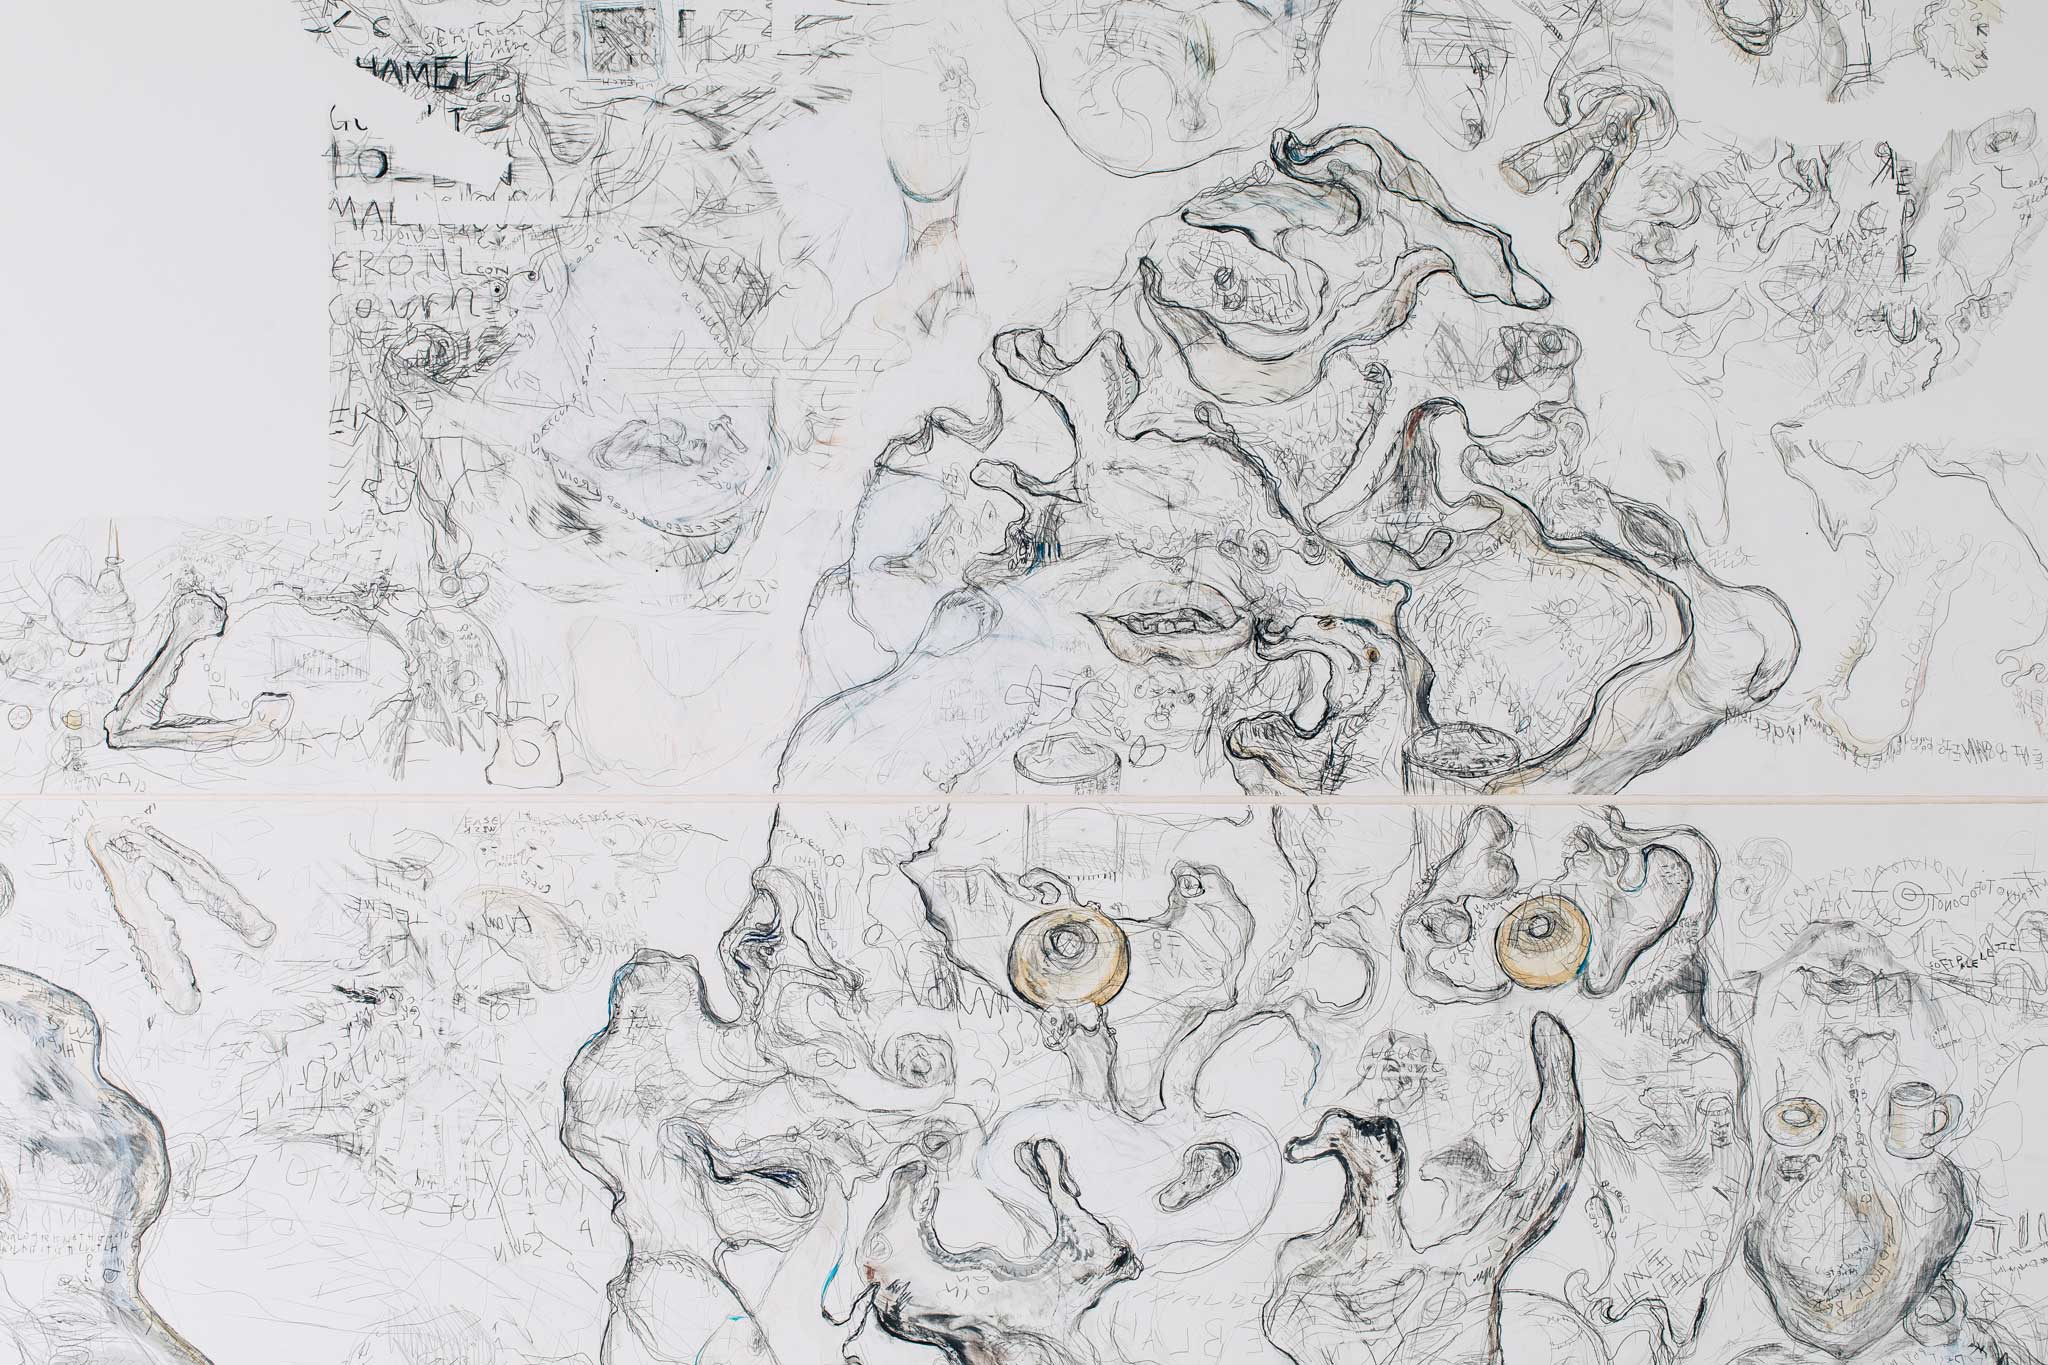 'Weasel Watch', 2016<br>Pencil, ink, acrylic, tea on Fabriano paper, 300 x 280cm